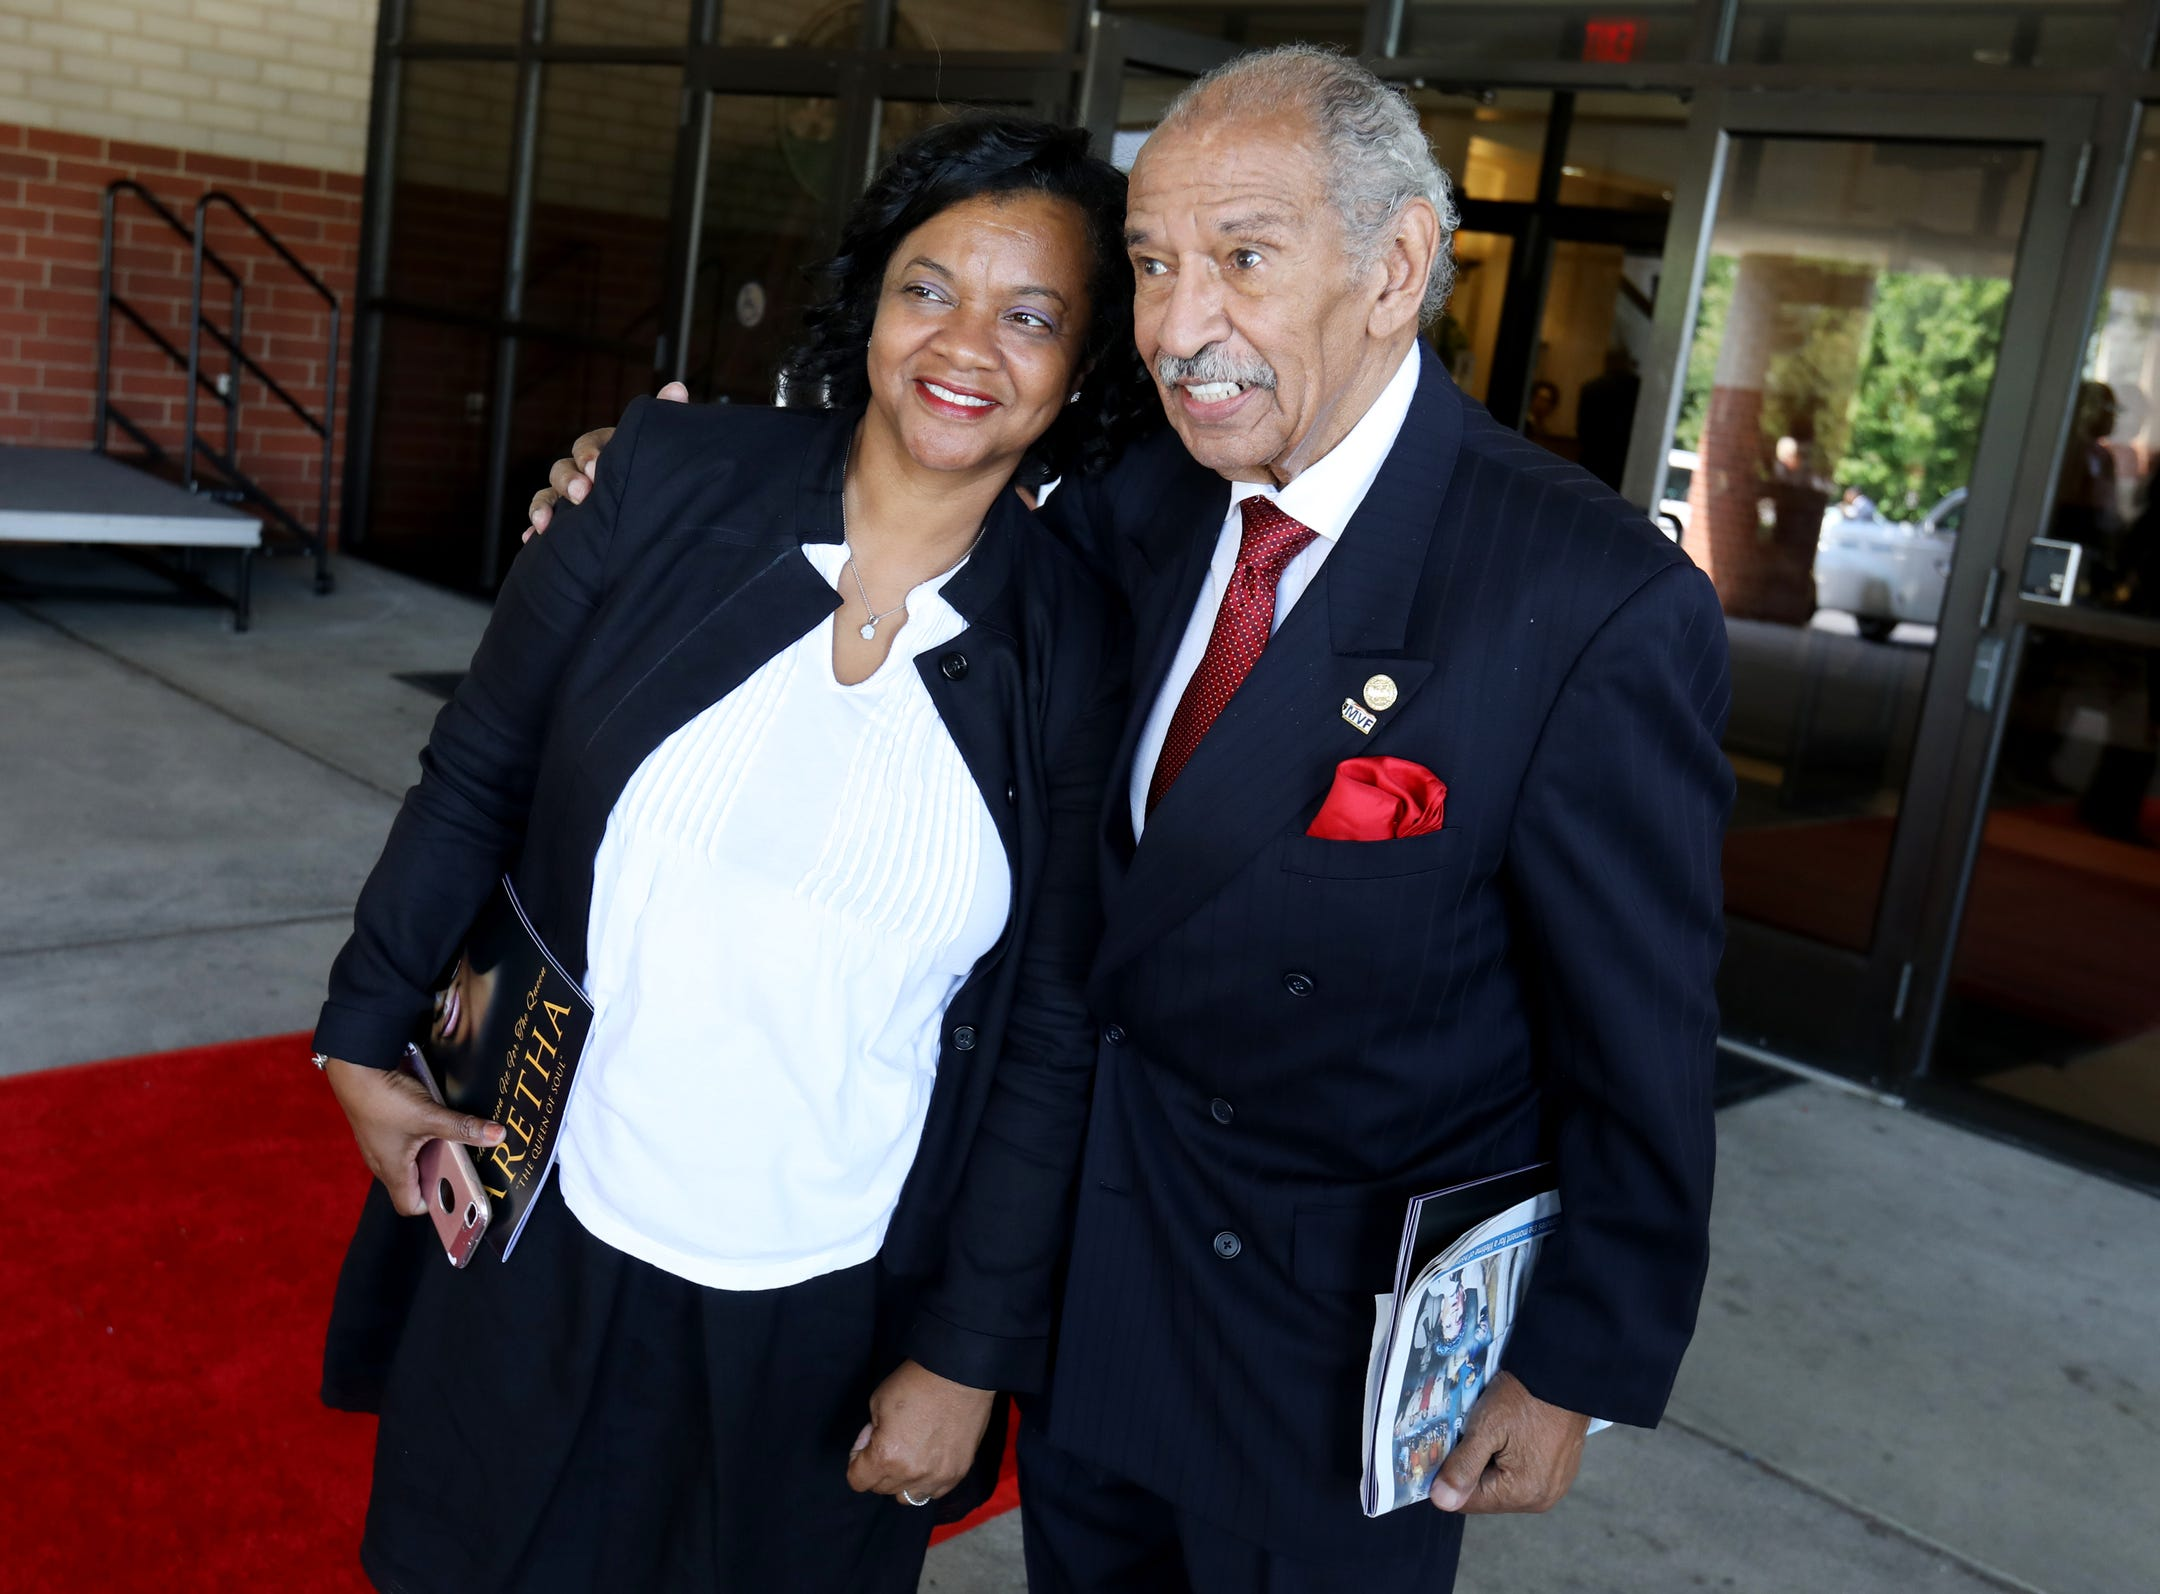 Monica and John Conyers pose for a photograph outside of Aretha Franklin's funeral at Greater Grace Temple in Detroit on Friday, August 31, 2018.